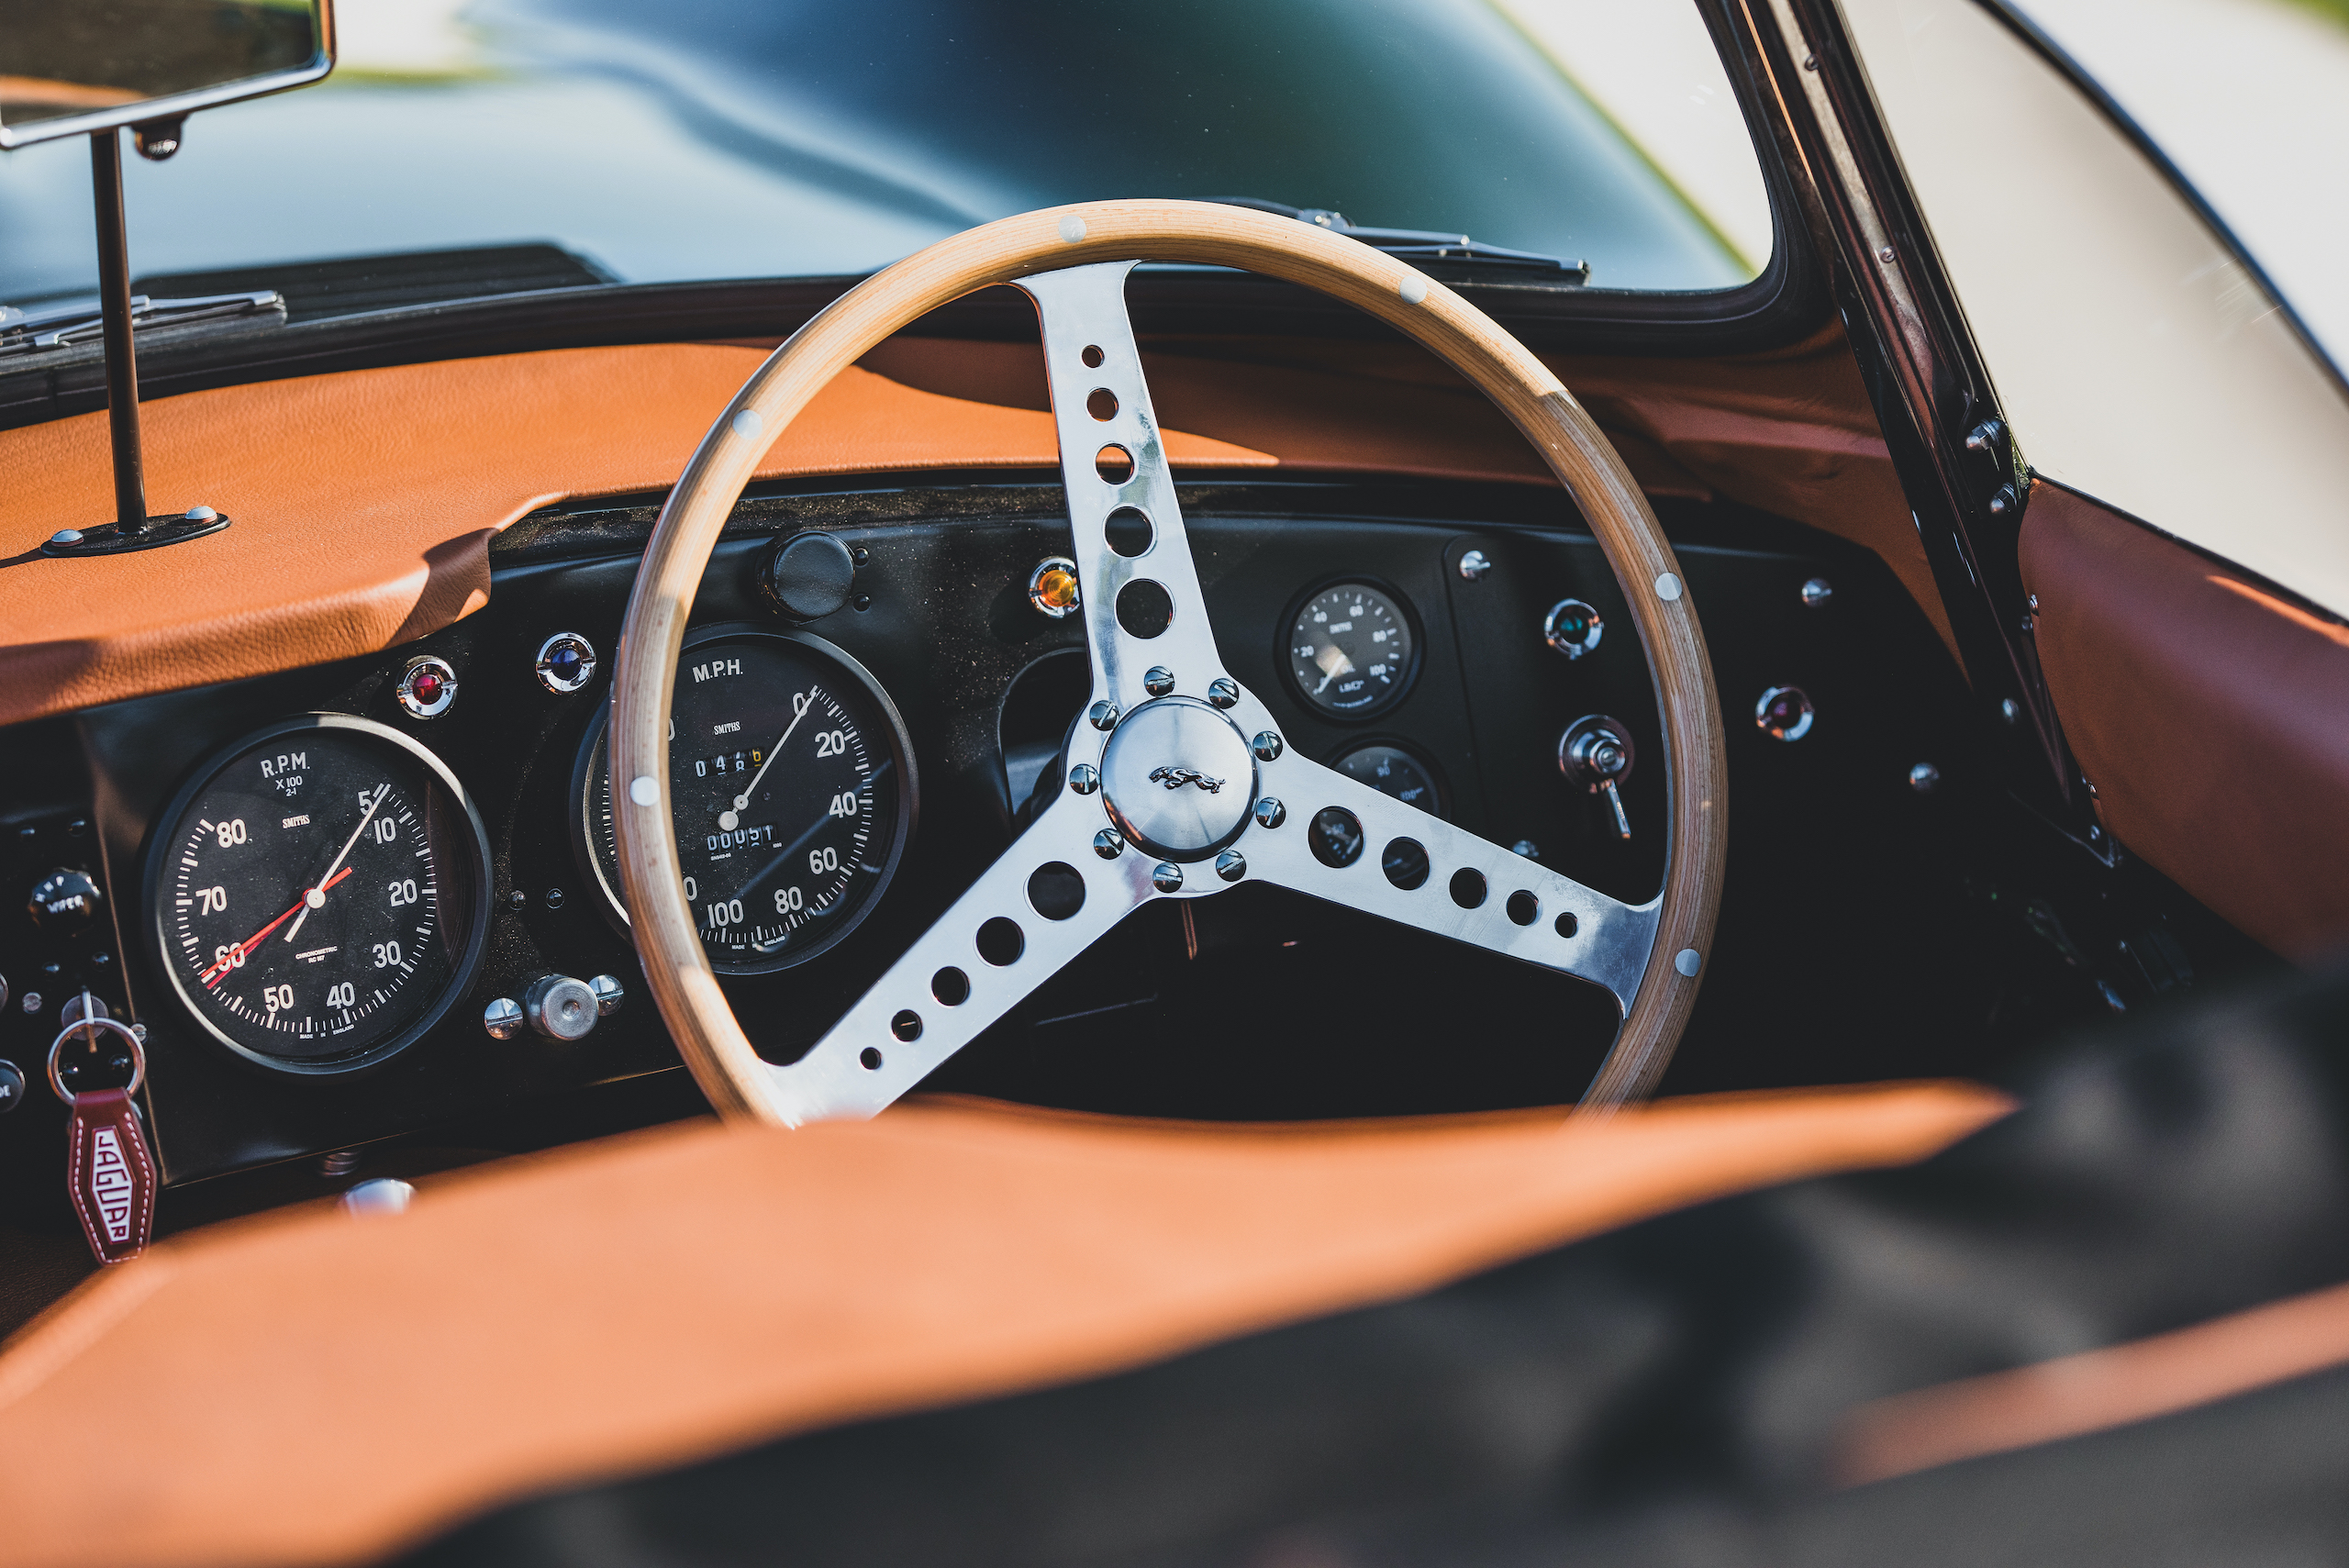 1957 Jag XKSS steering wheel detail